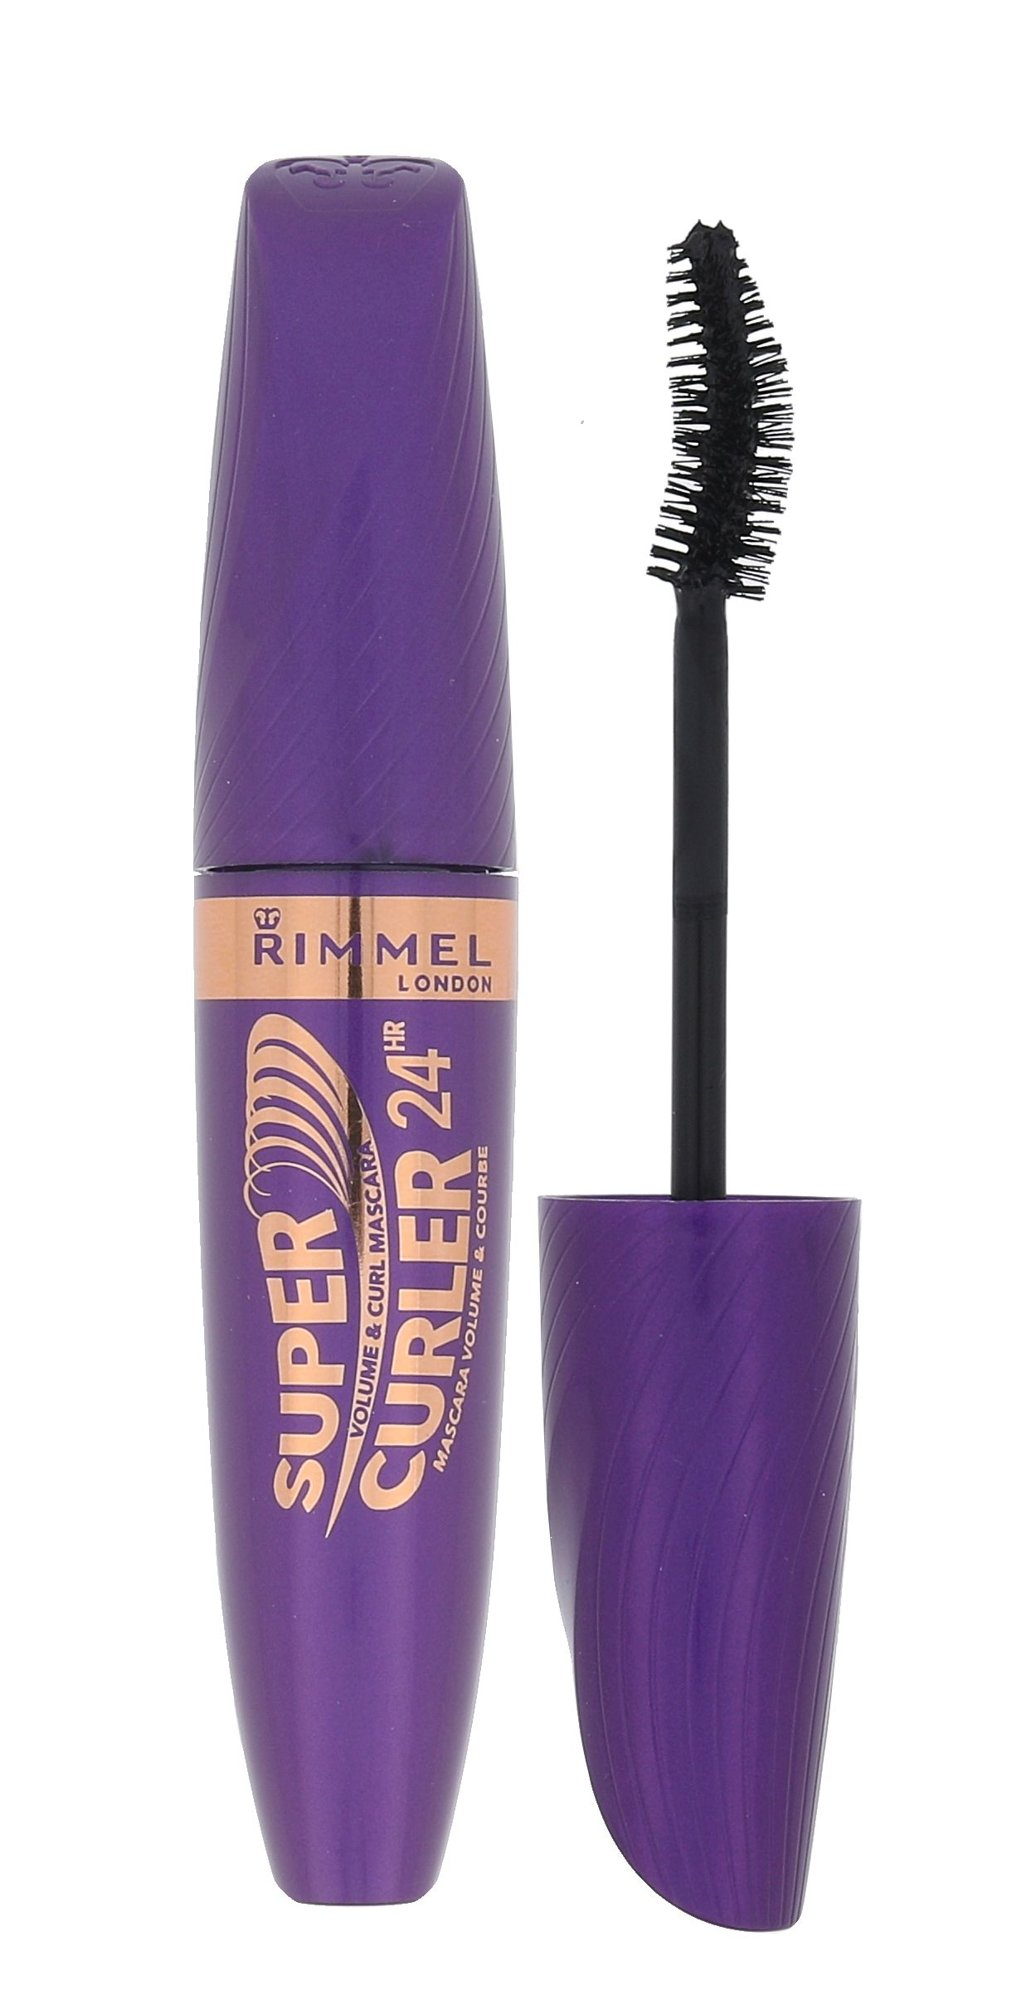 Rimmel London Supercurler 24HR Cosmetic 12ml 001 Black